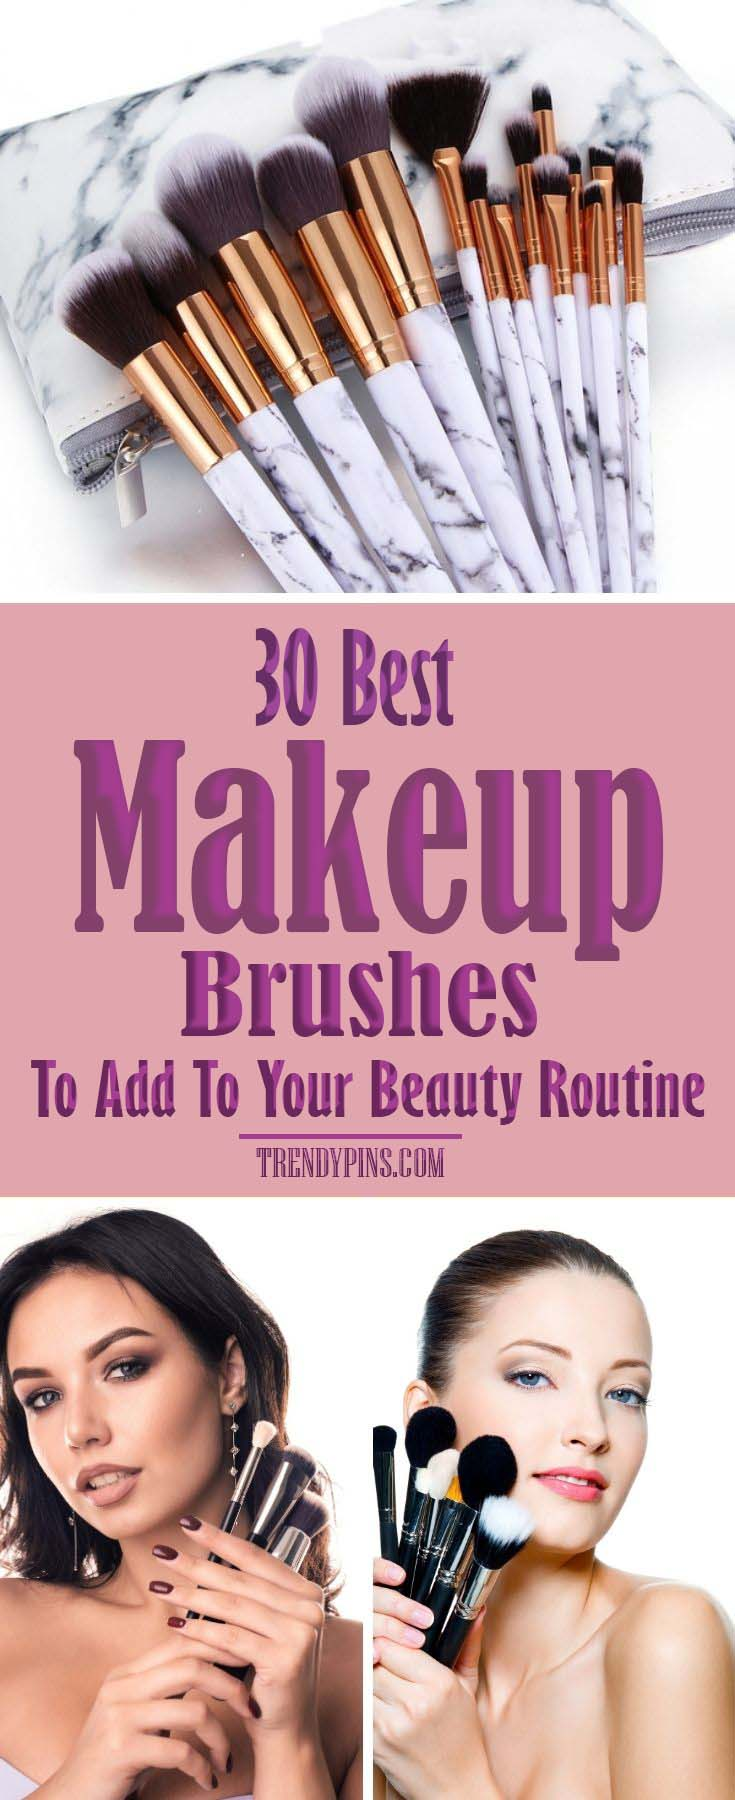 30 Best Makeup Brushes To Add To Your Beauty Routine #makeup #beauty #trendypins